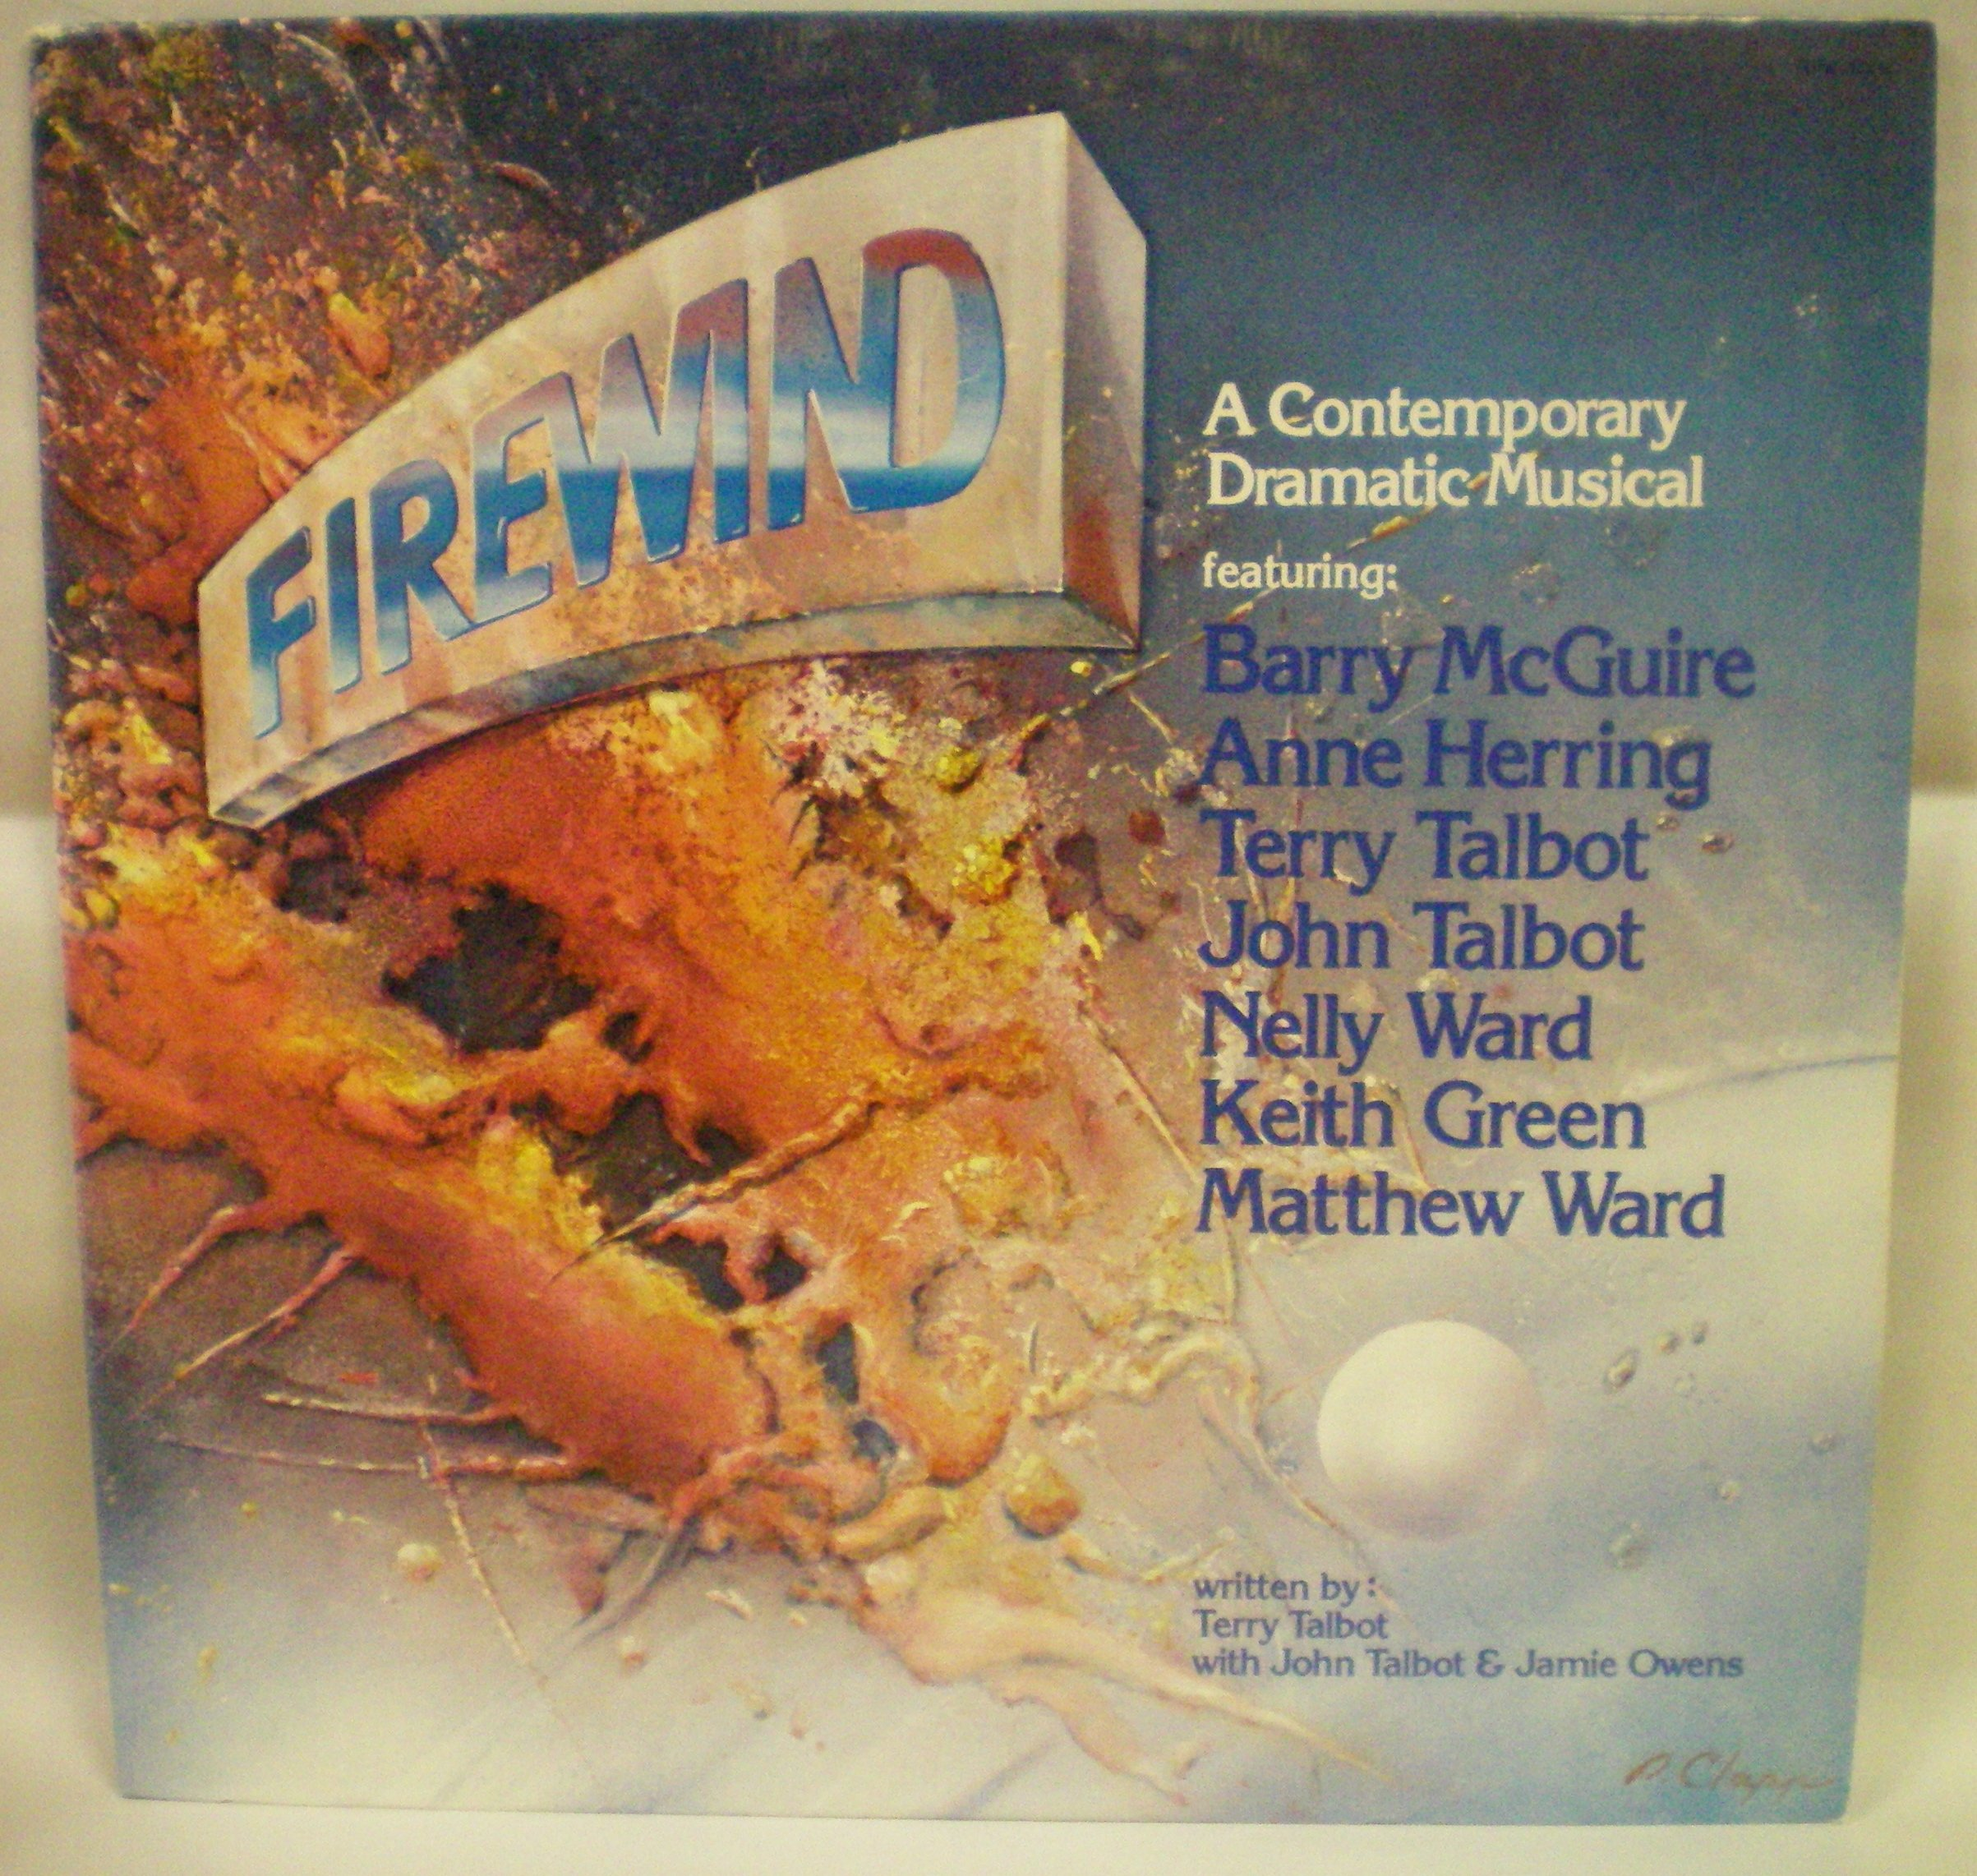 Firewind: A Dramatic Musical written by Terry Talbot with John Talbot and Jamie Owens by Sparrow